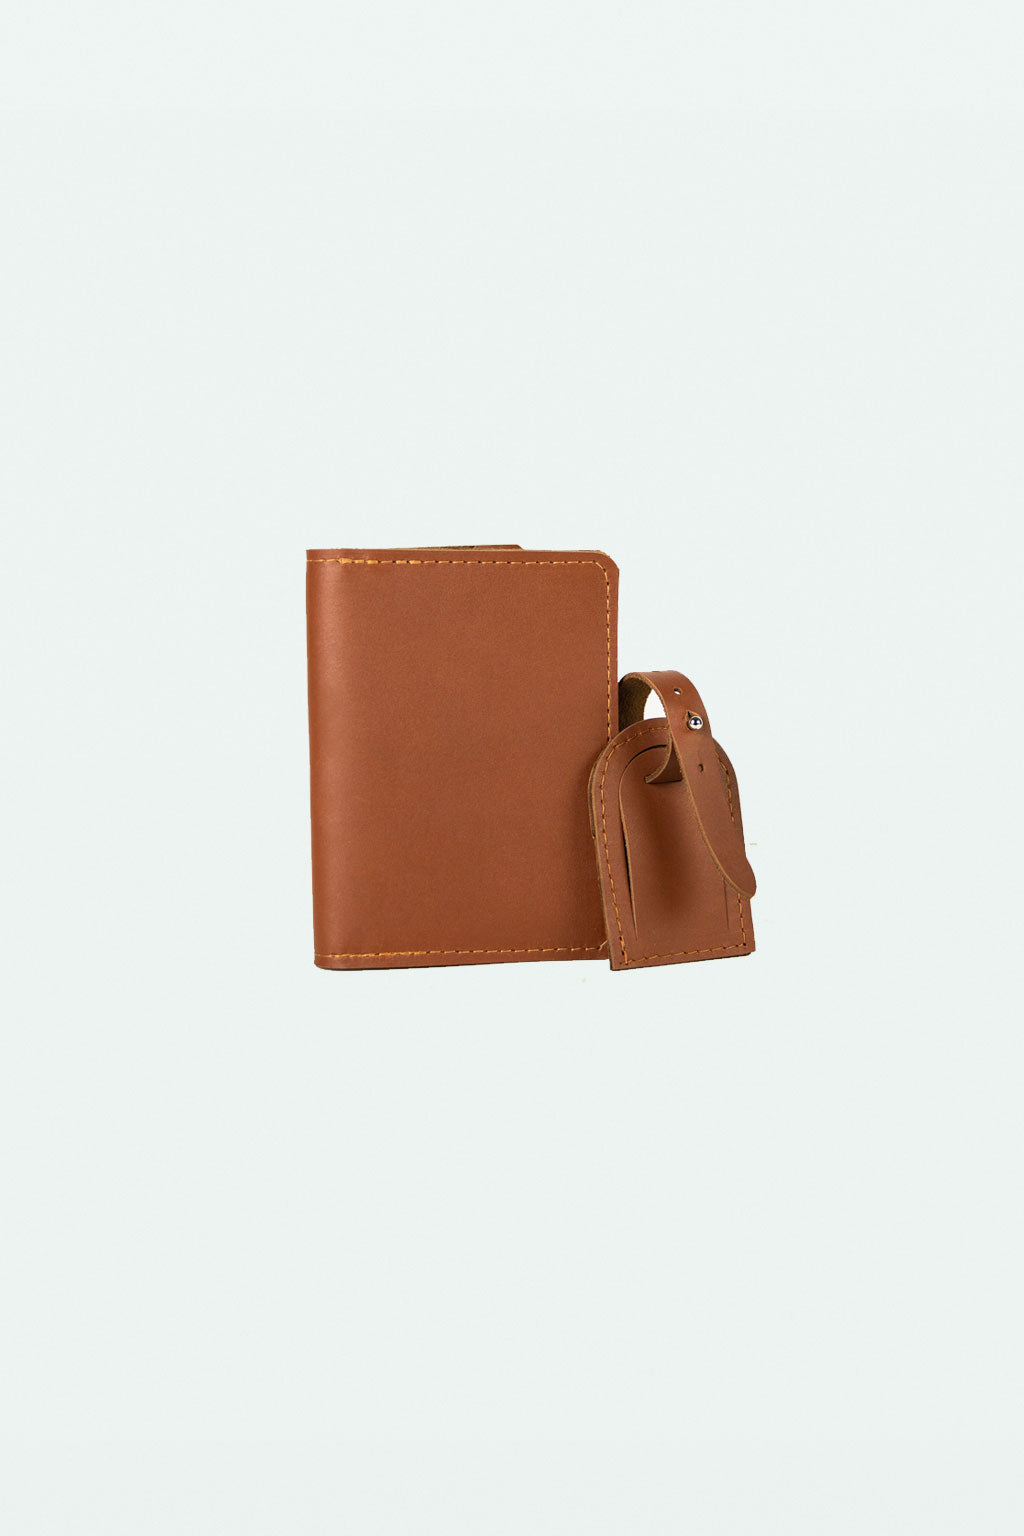 Passport Holder - Tan